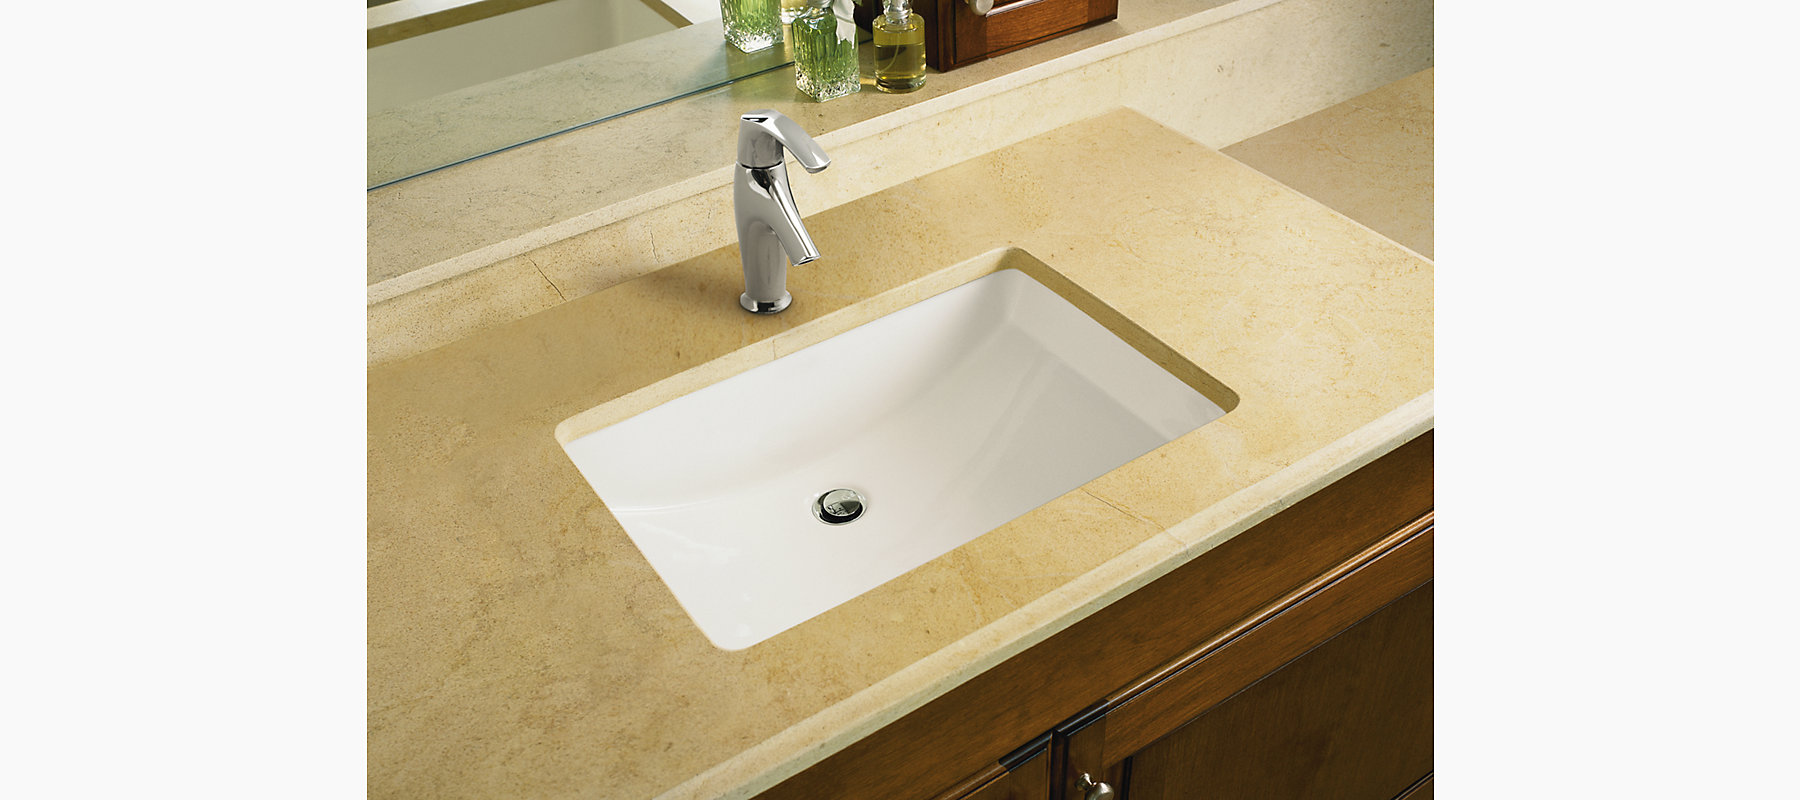 ada undermount kitchen sink kohler k 2215 0 ladena undercounter lavatory sink white 3986